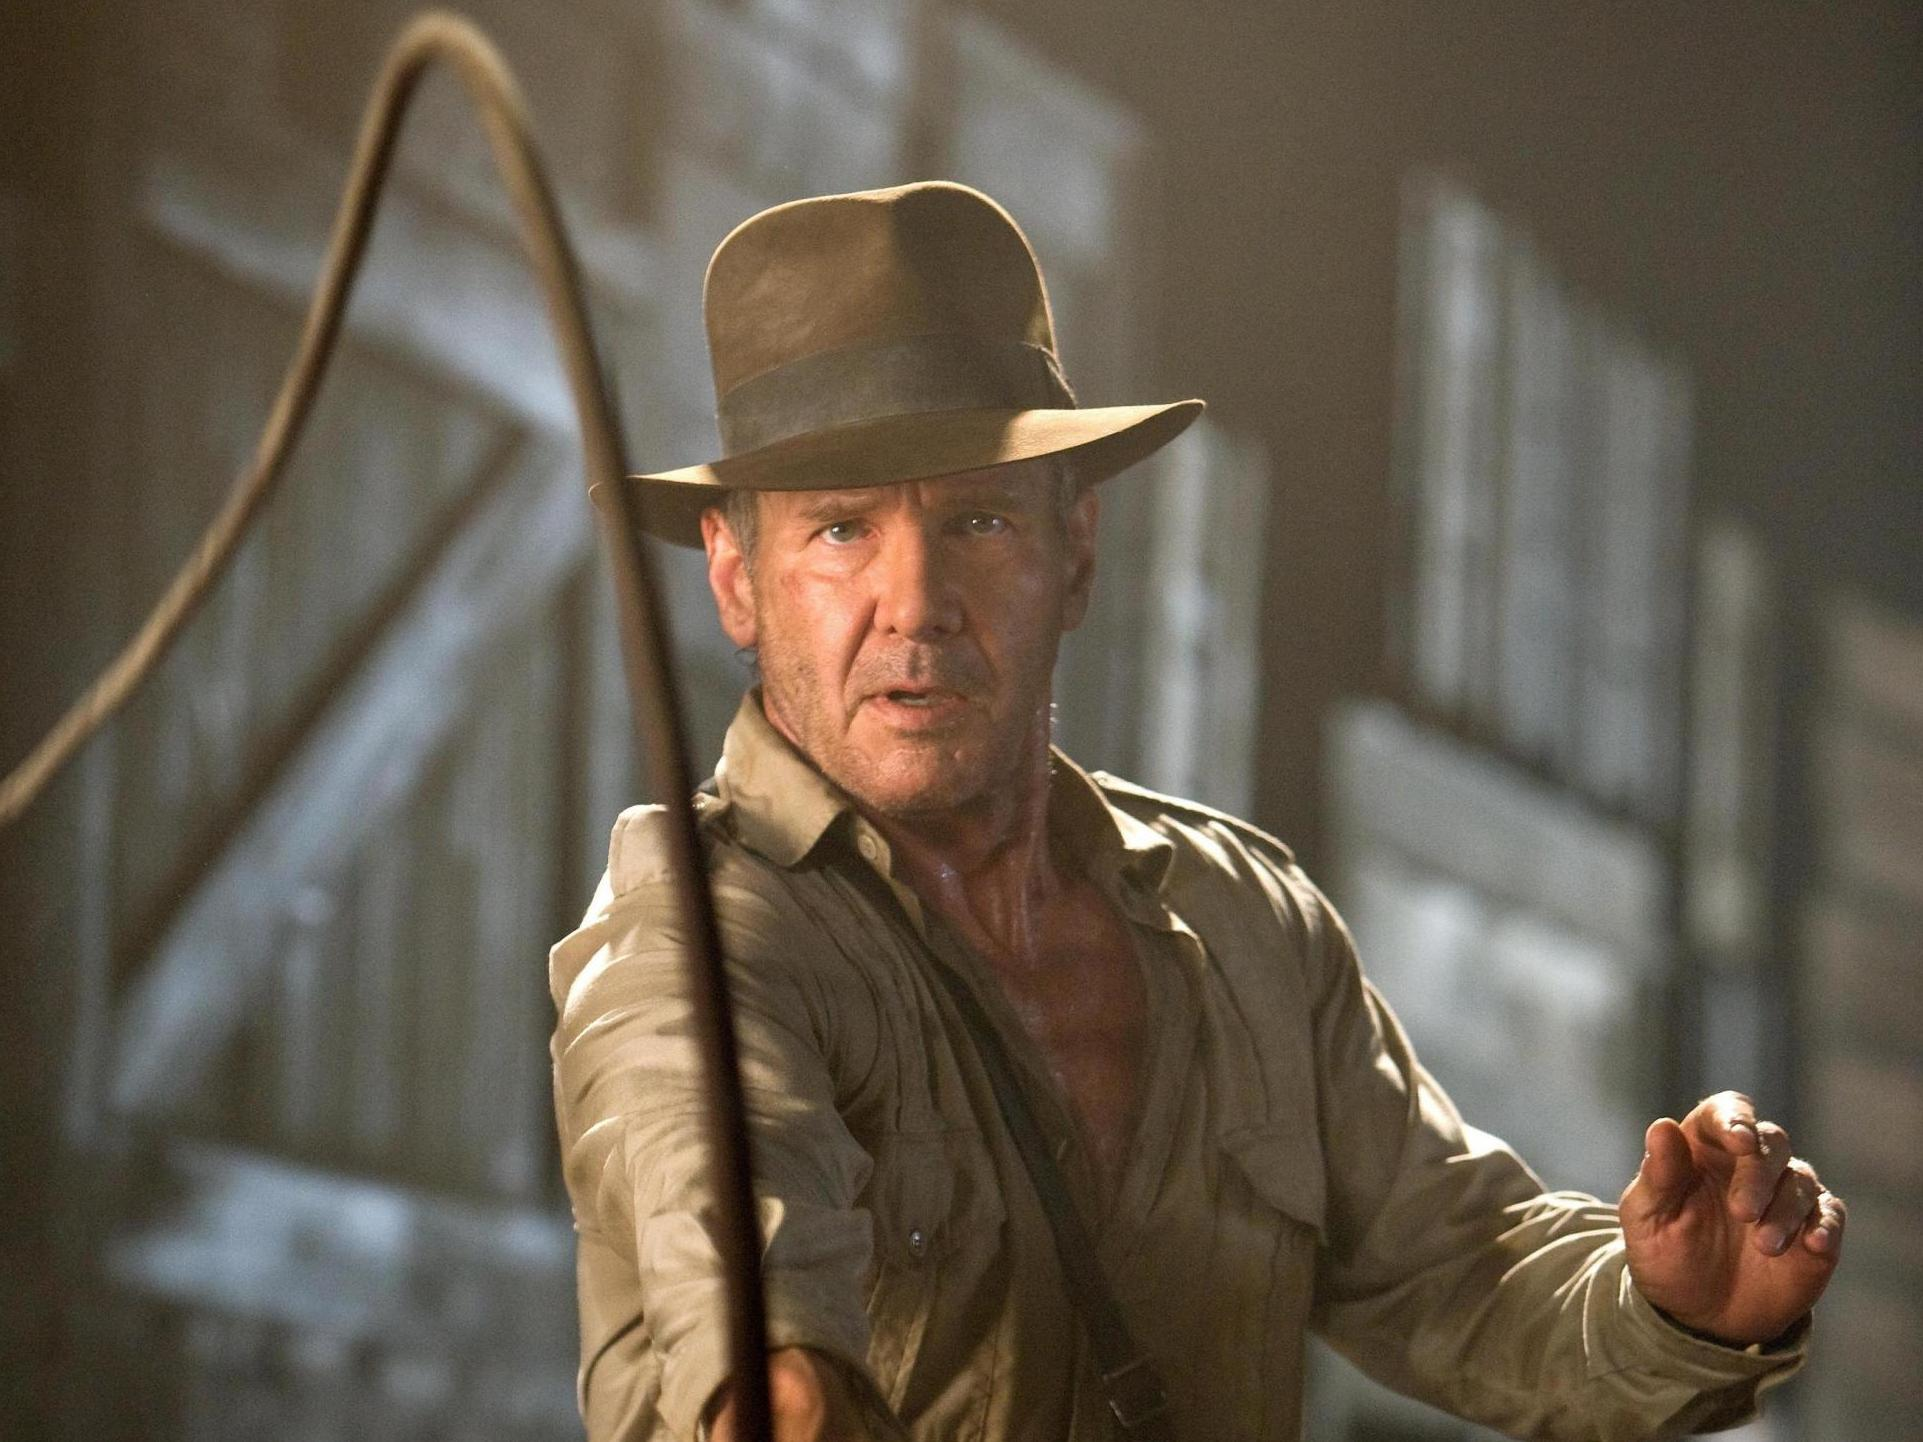 Indiana Jones fans call for cancellation of new film after Steven Spielberg news